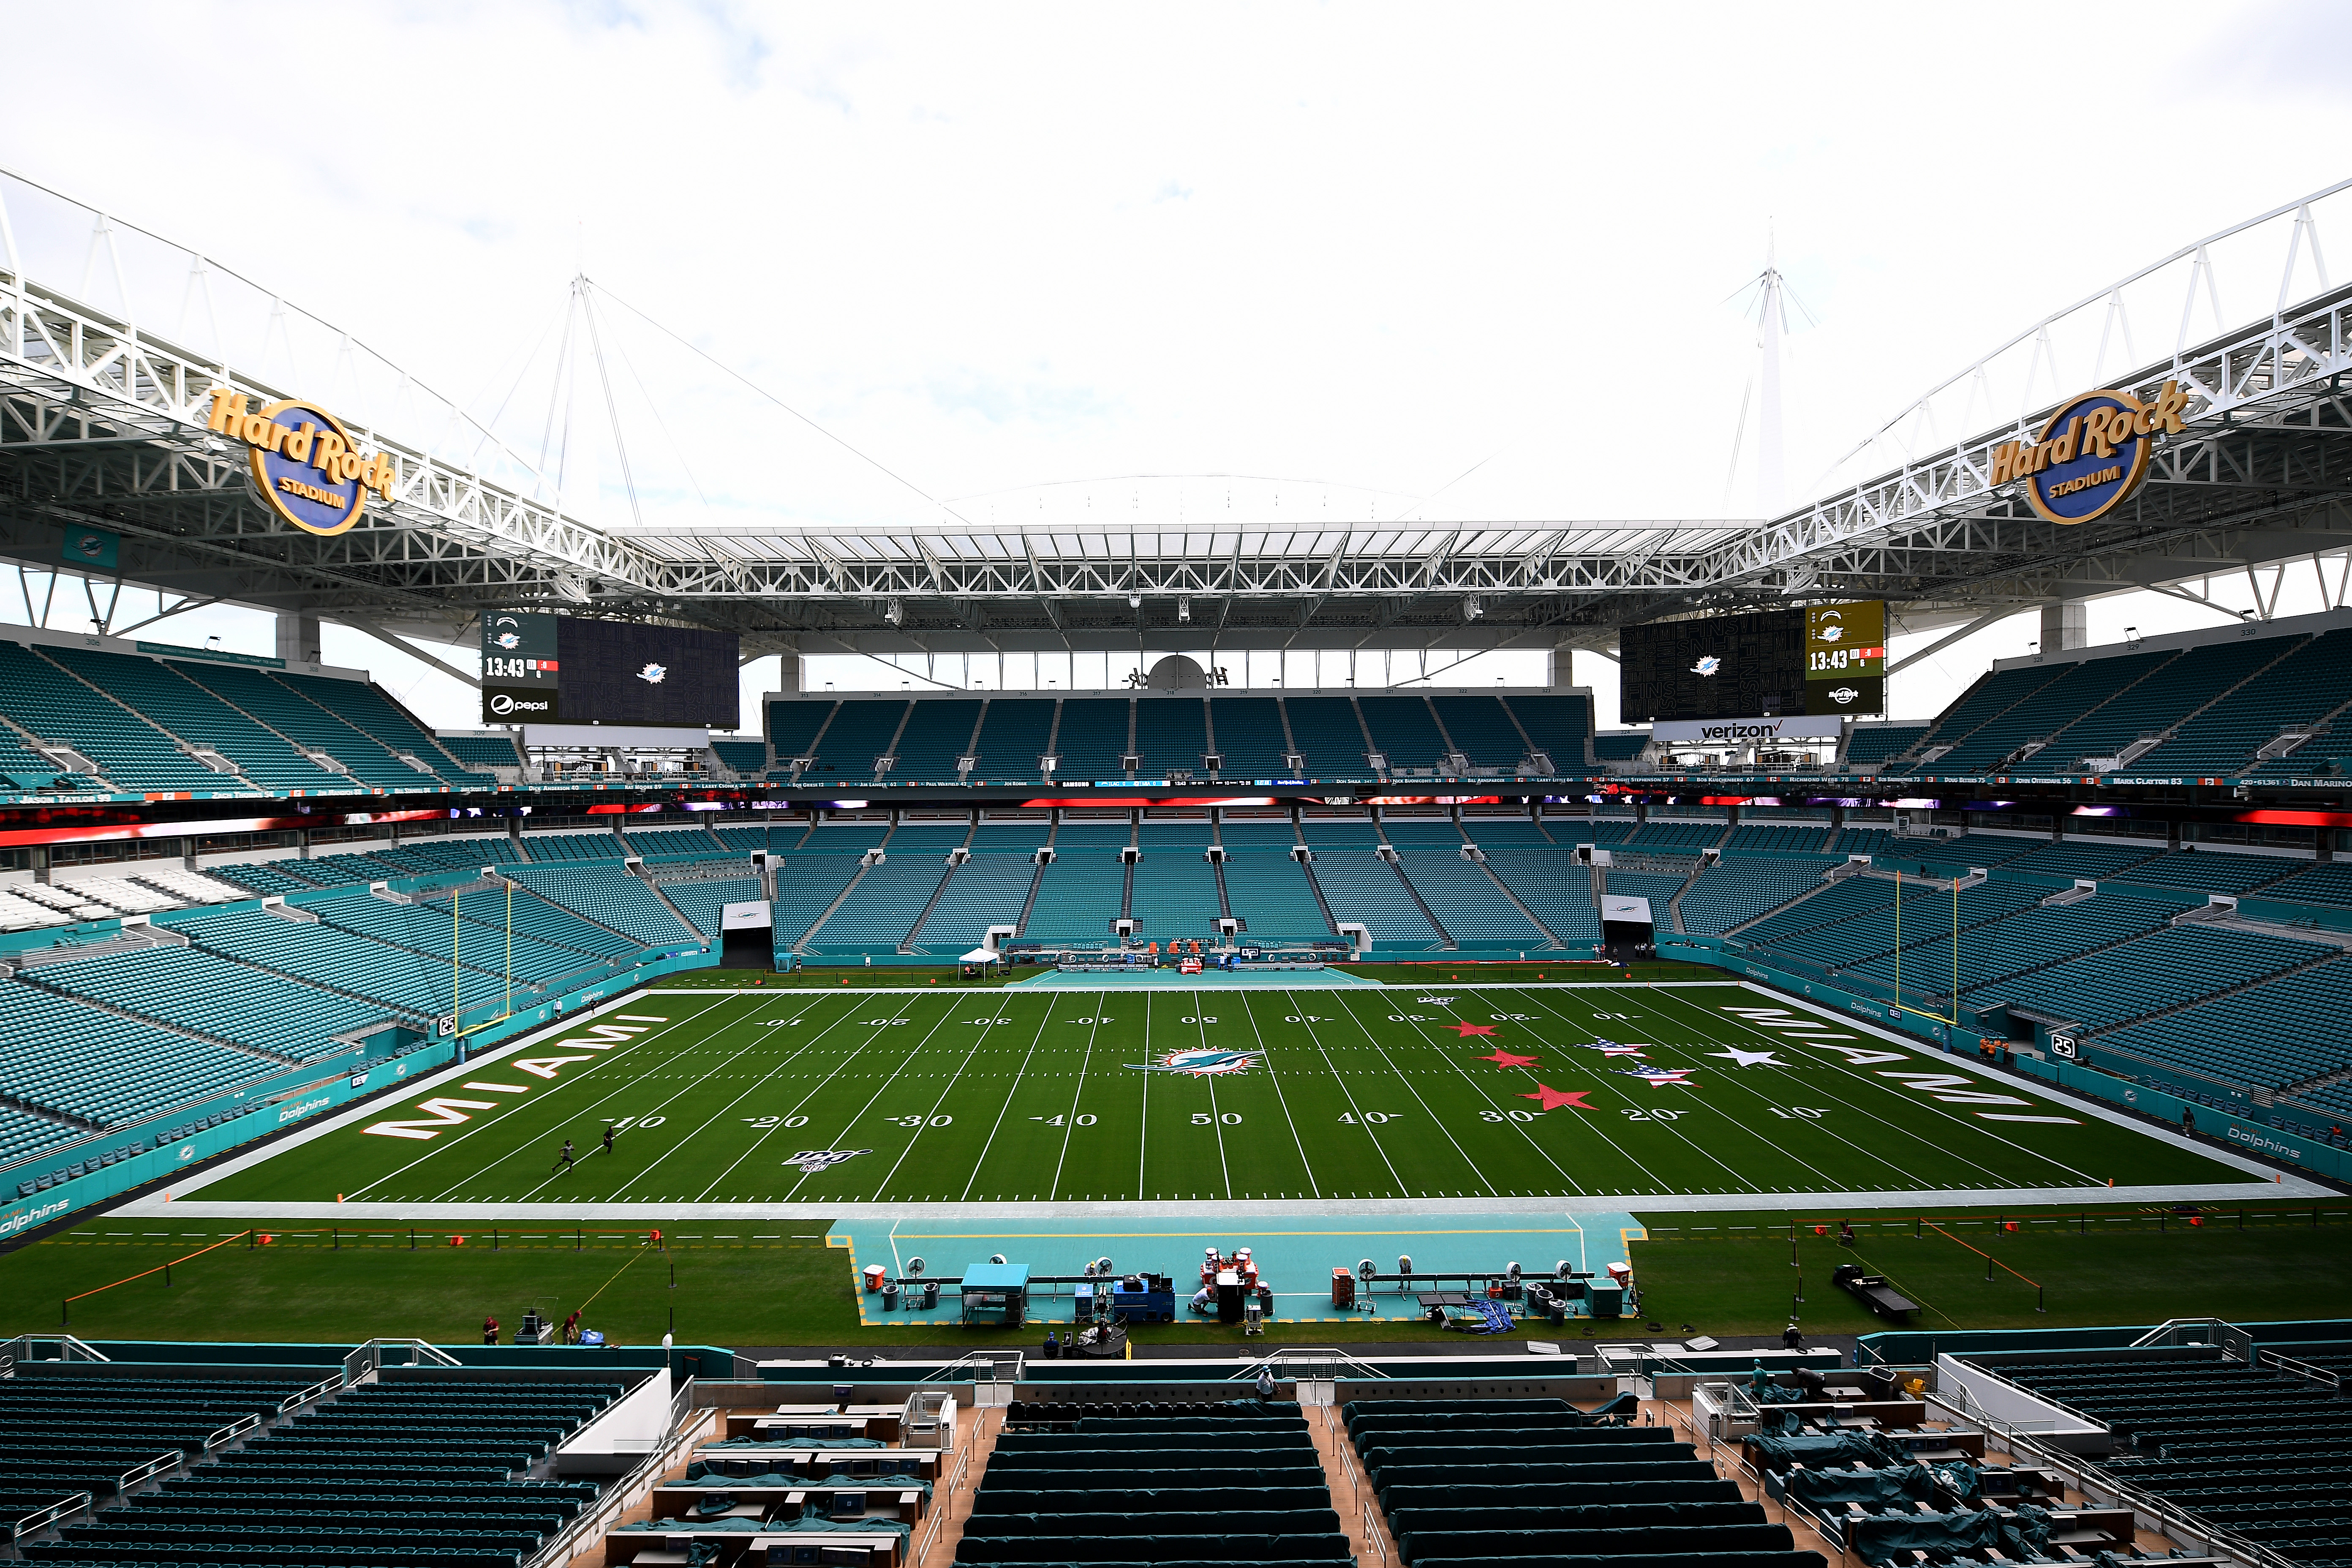 Los Angeles Chargers vMiami Dolphins